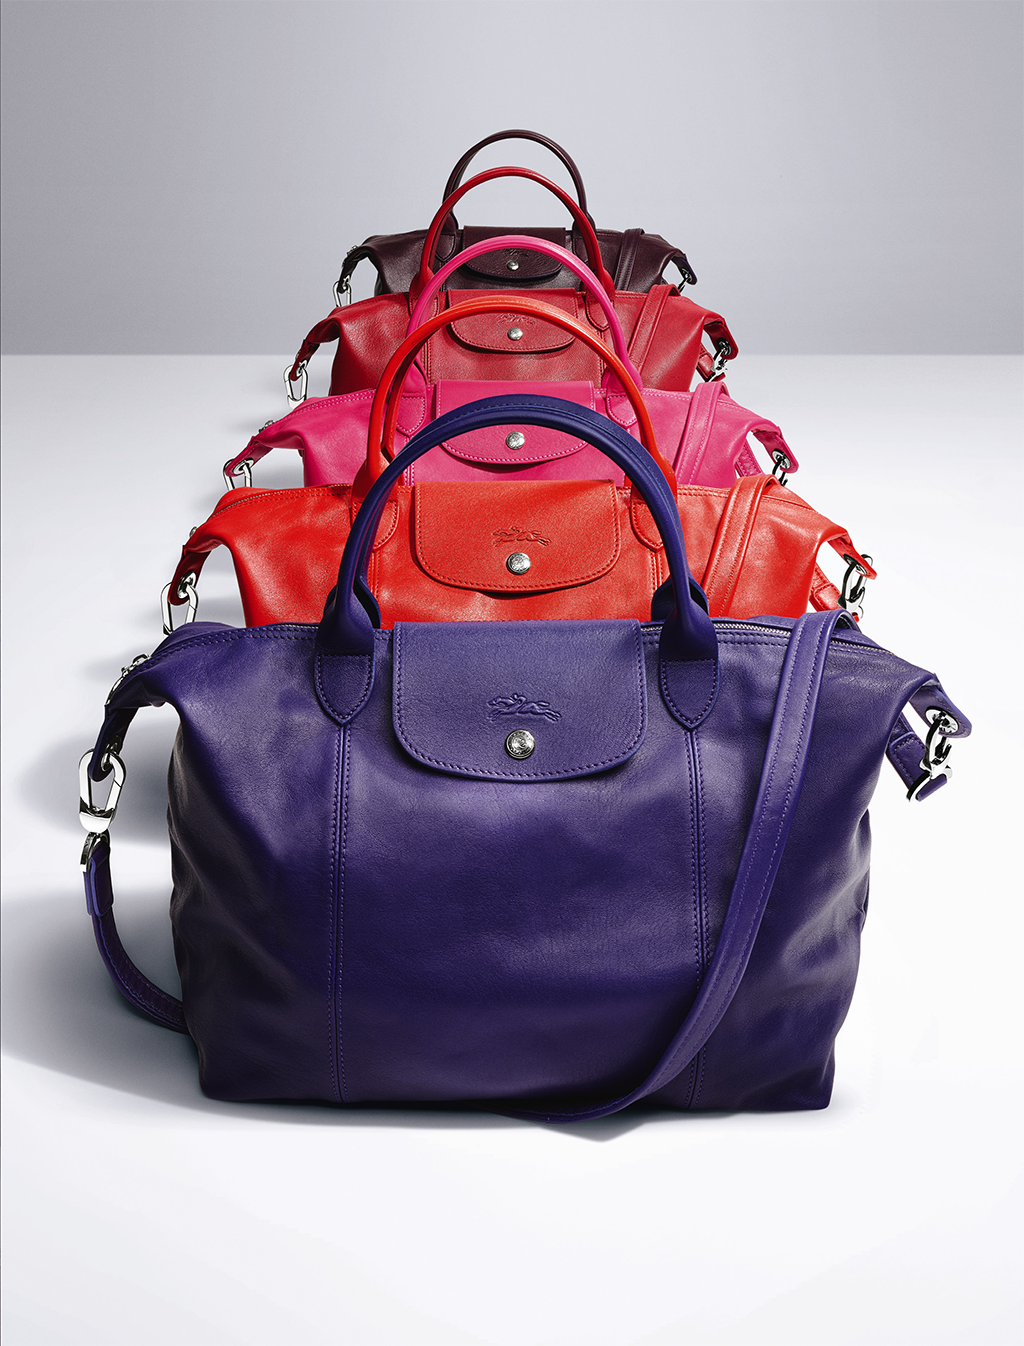 fcbbccb570 Longchamp Fall 2014 collection. Discover it on www.longchamp.com  #wherefashionhappens #style #bags